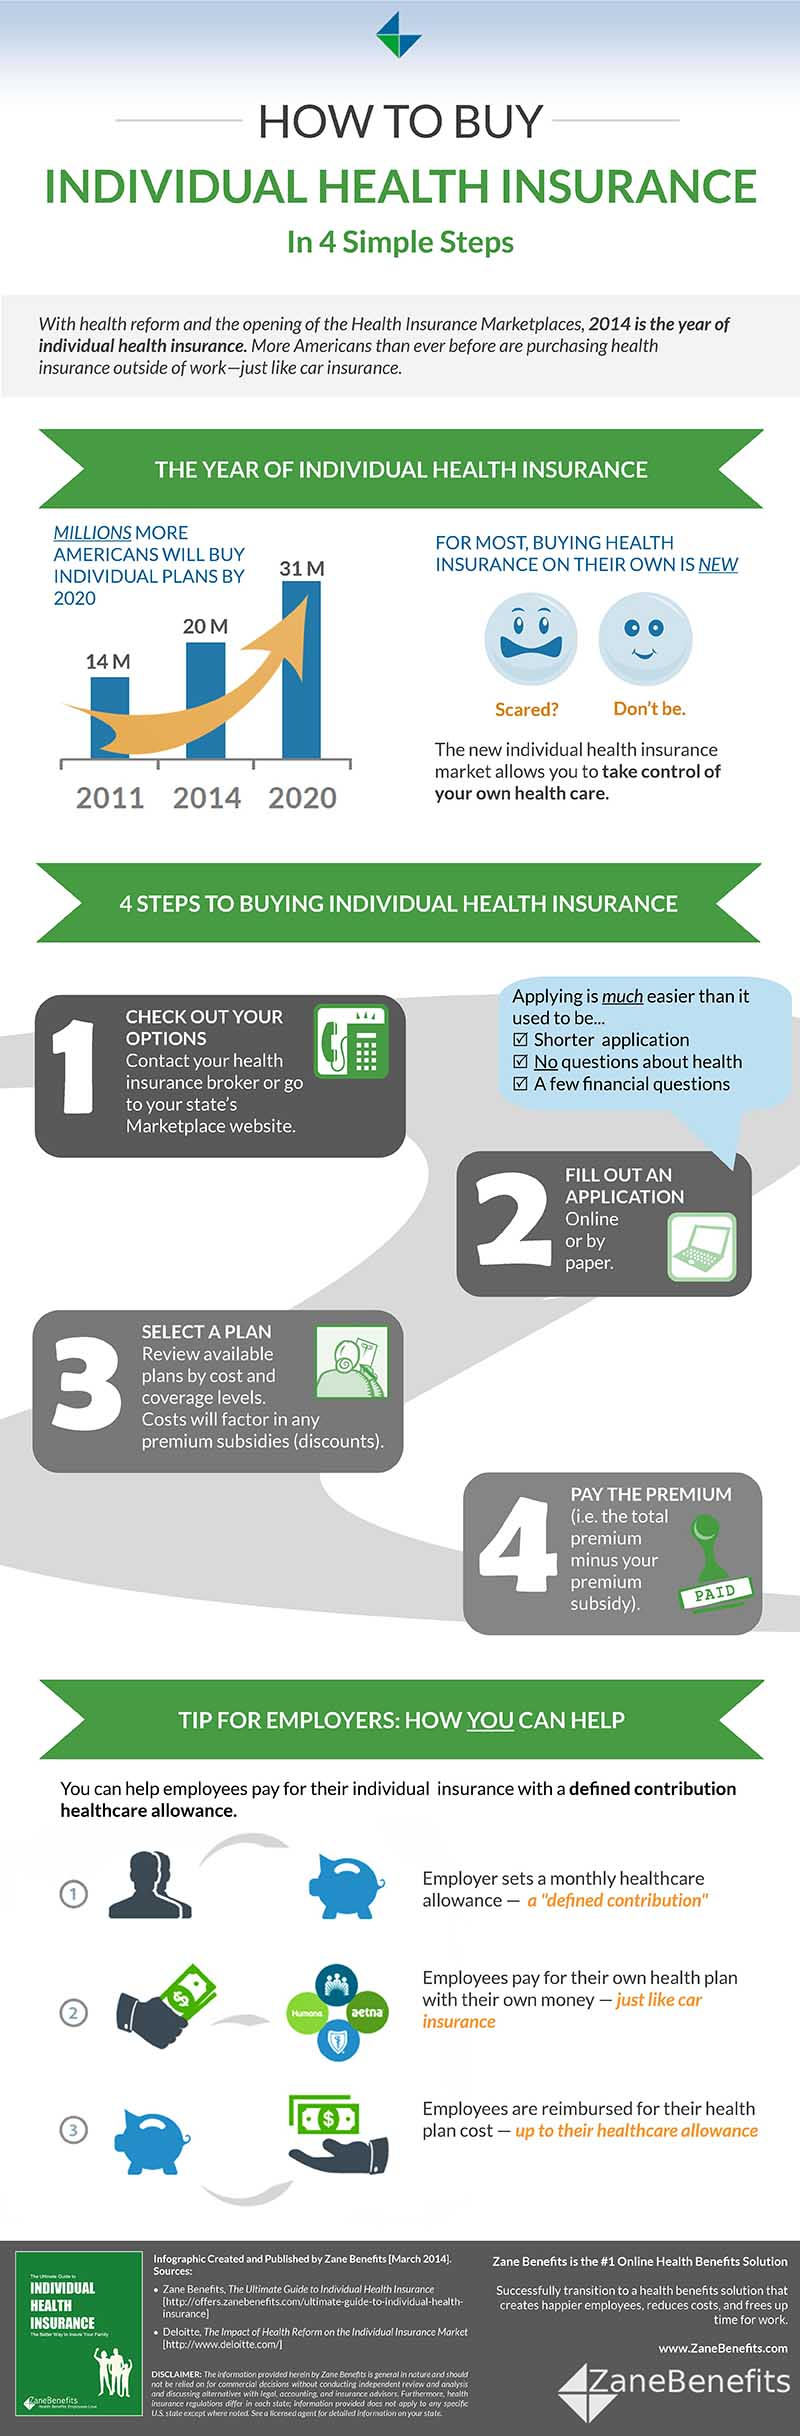 Infographic - How to Buy Individual Health Insurance